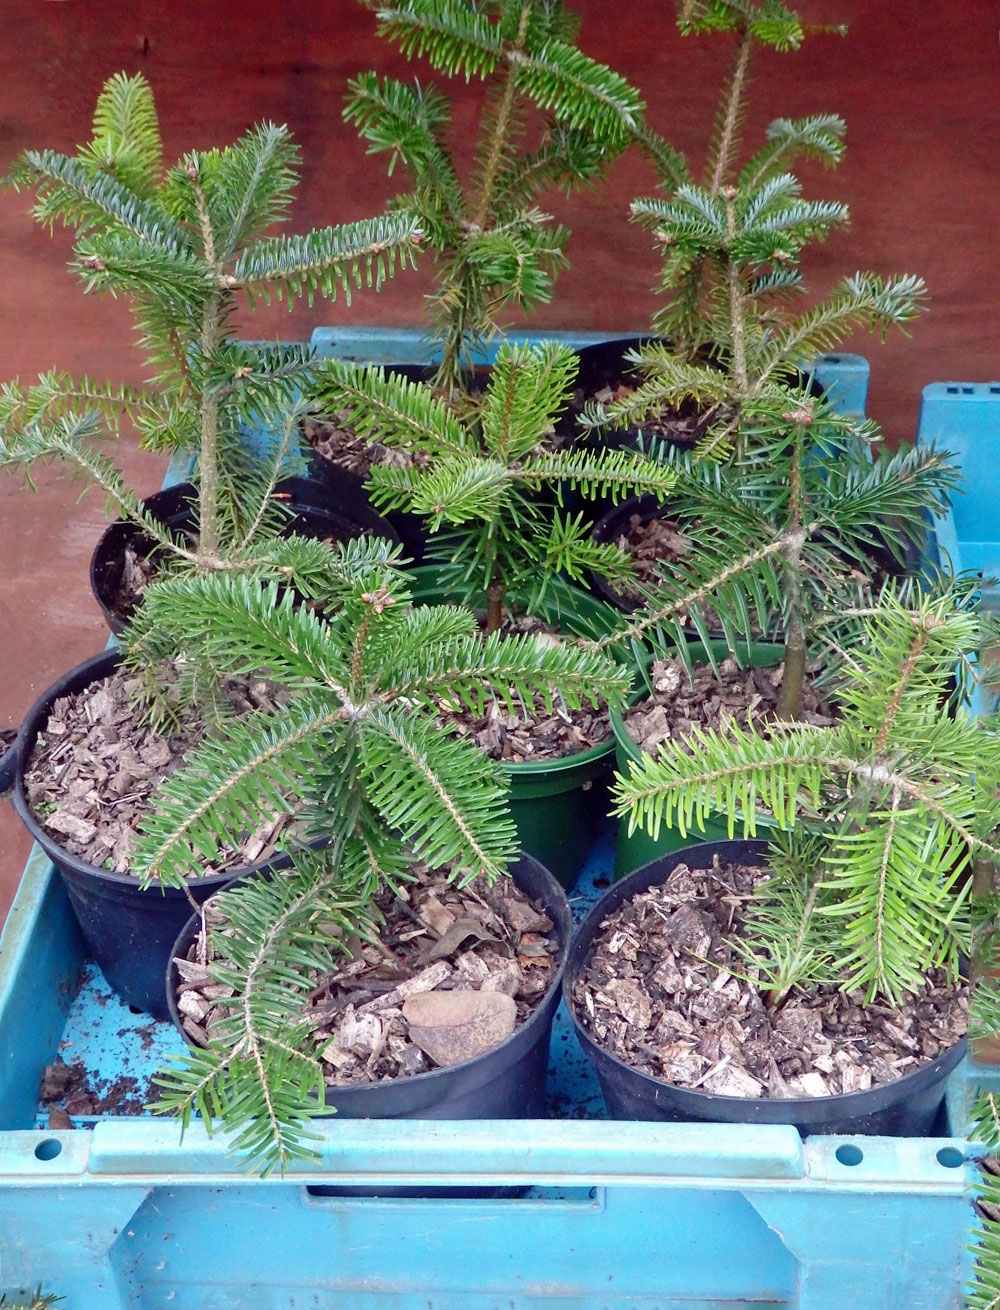 Seedling Christmas trees